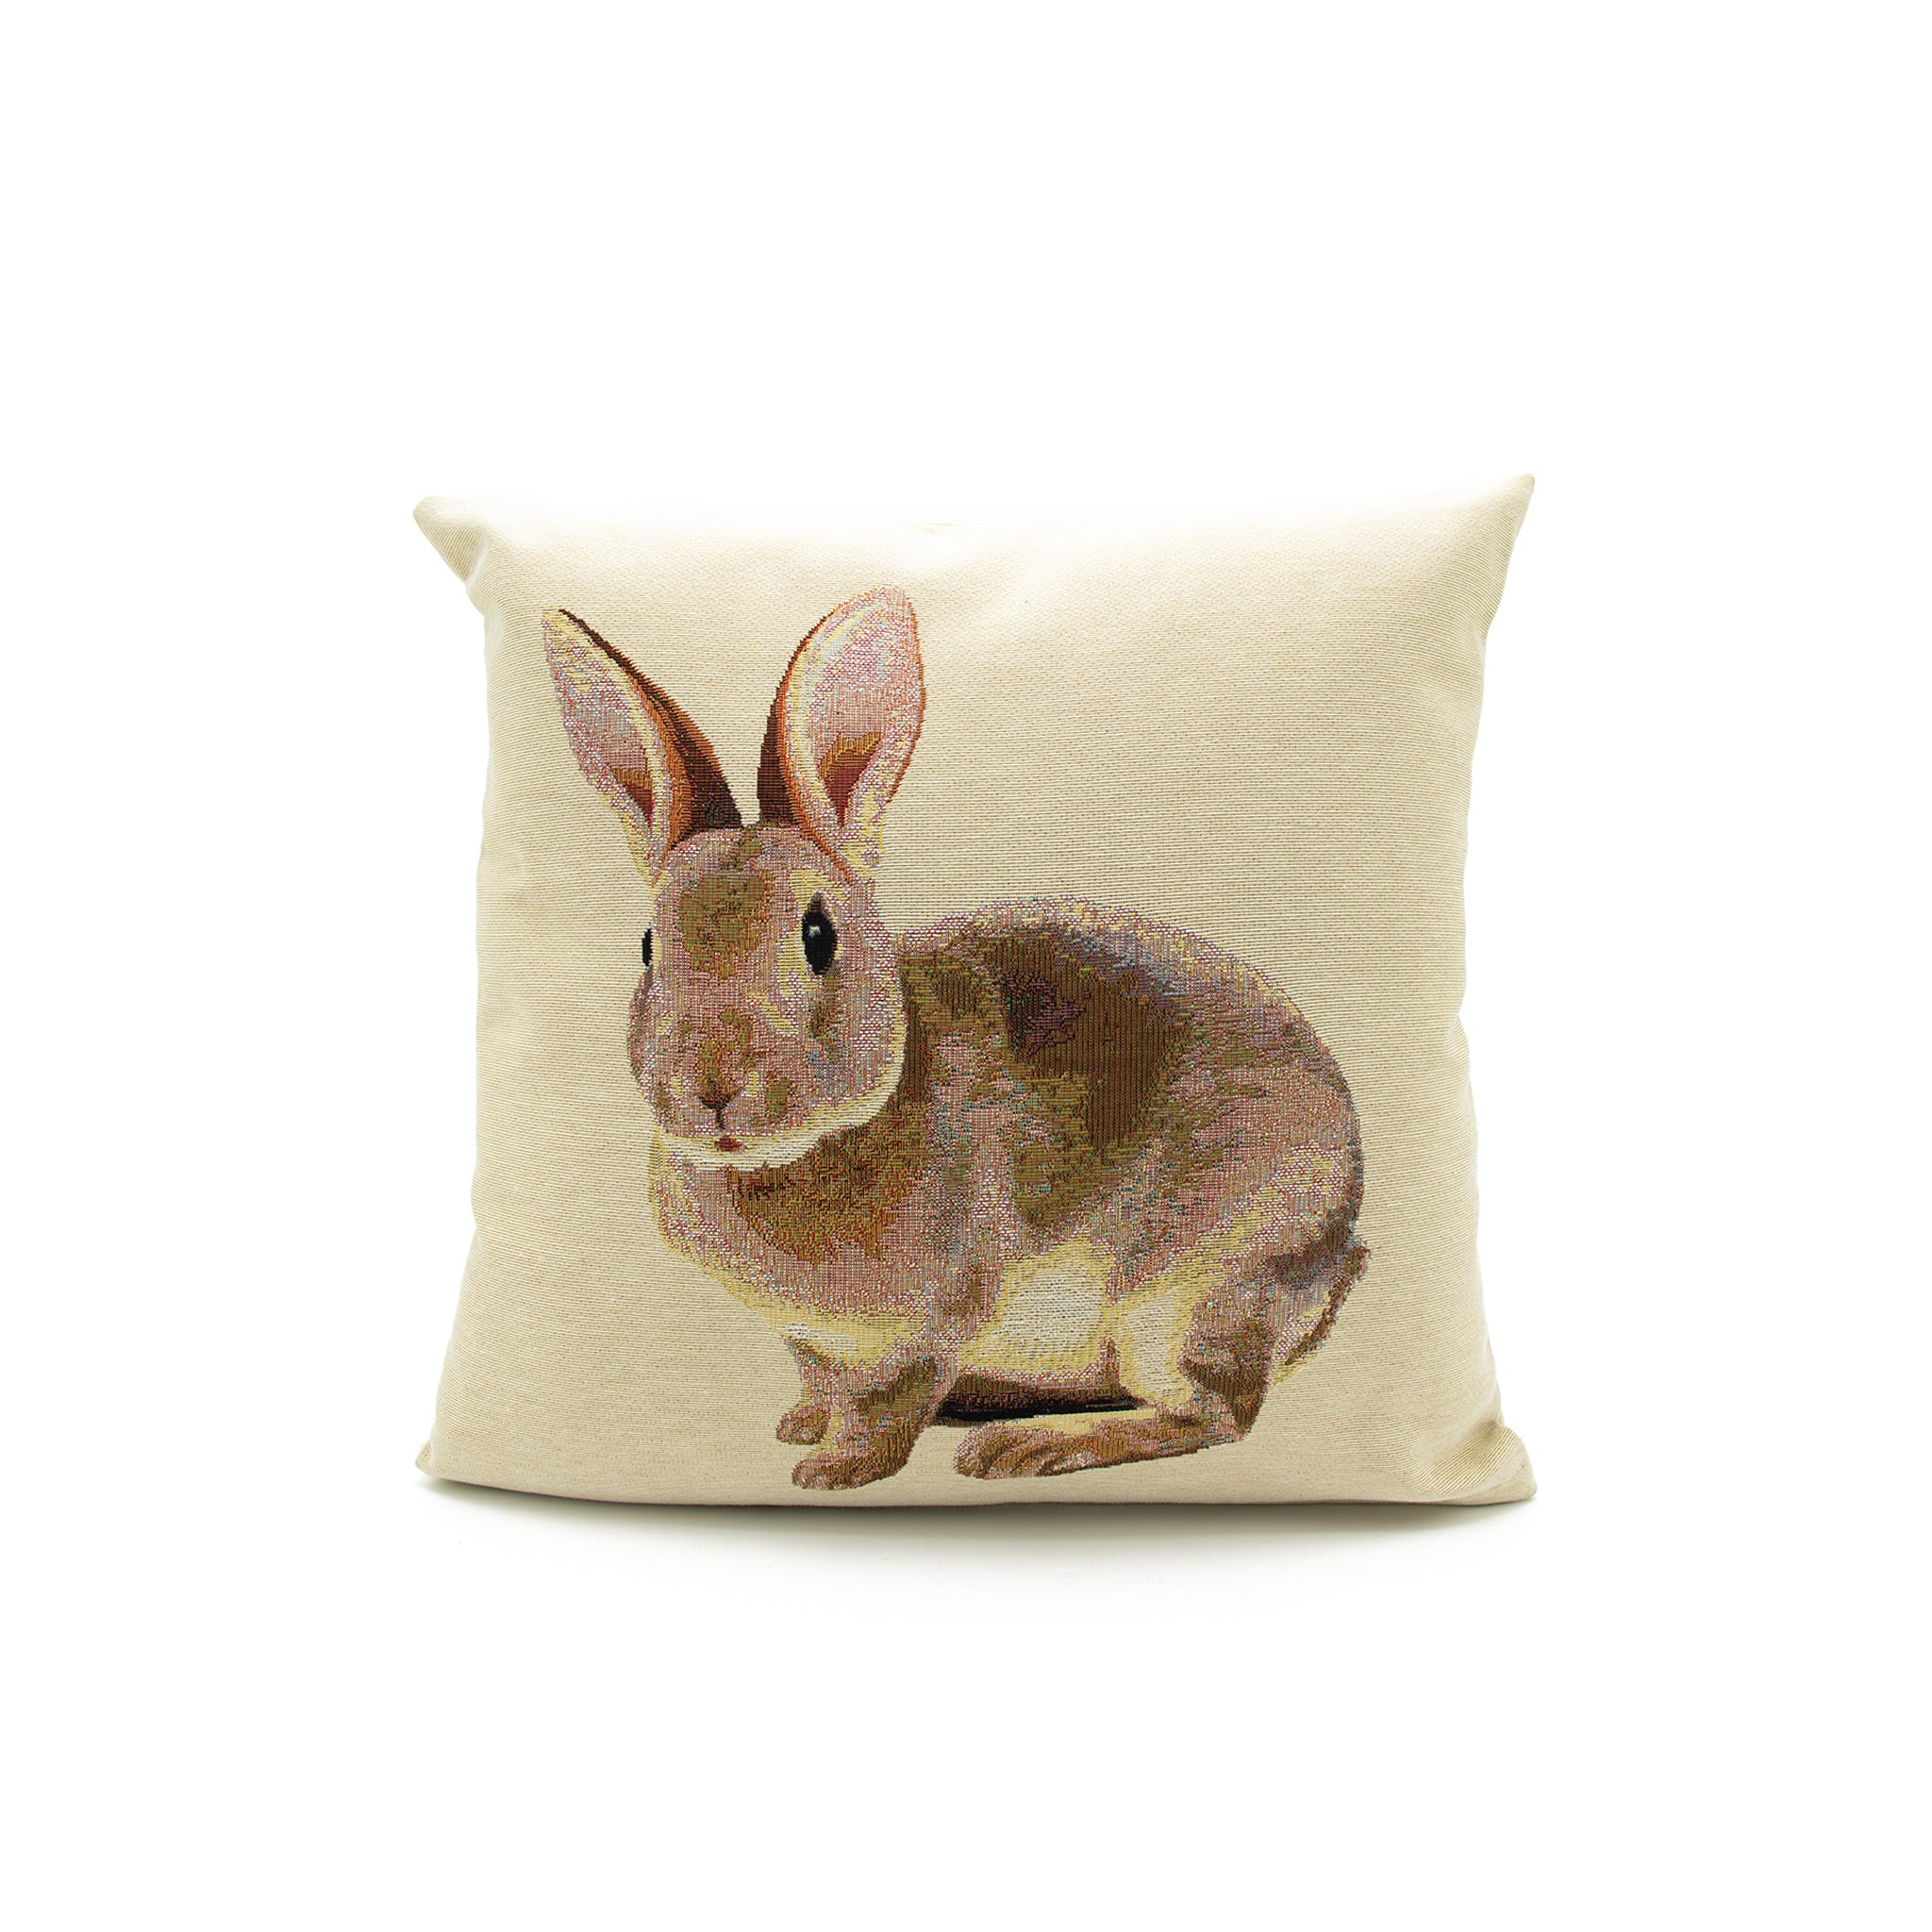 Little Bunny cushion